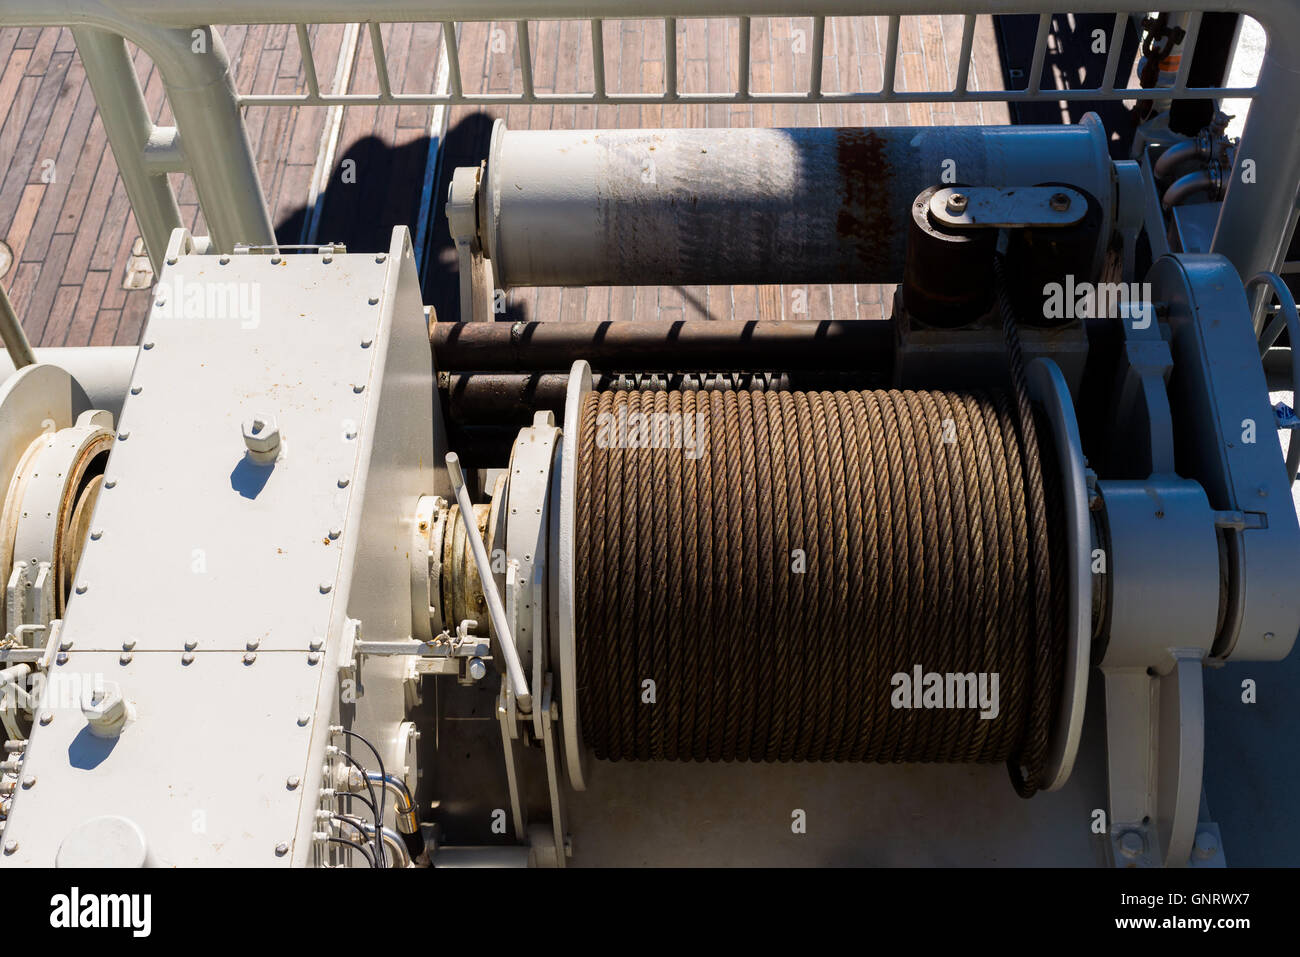 Large spool with steel wire on a tugging winch on a ship. - Stock Image